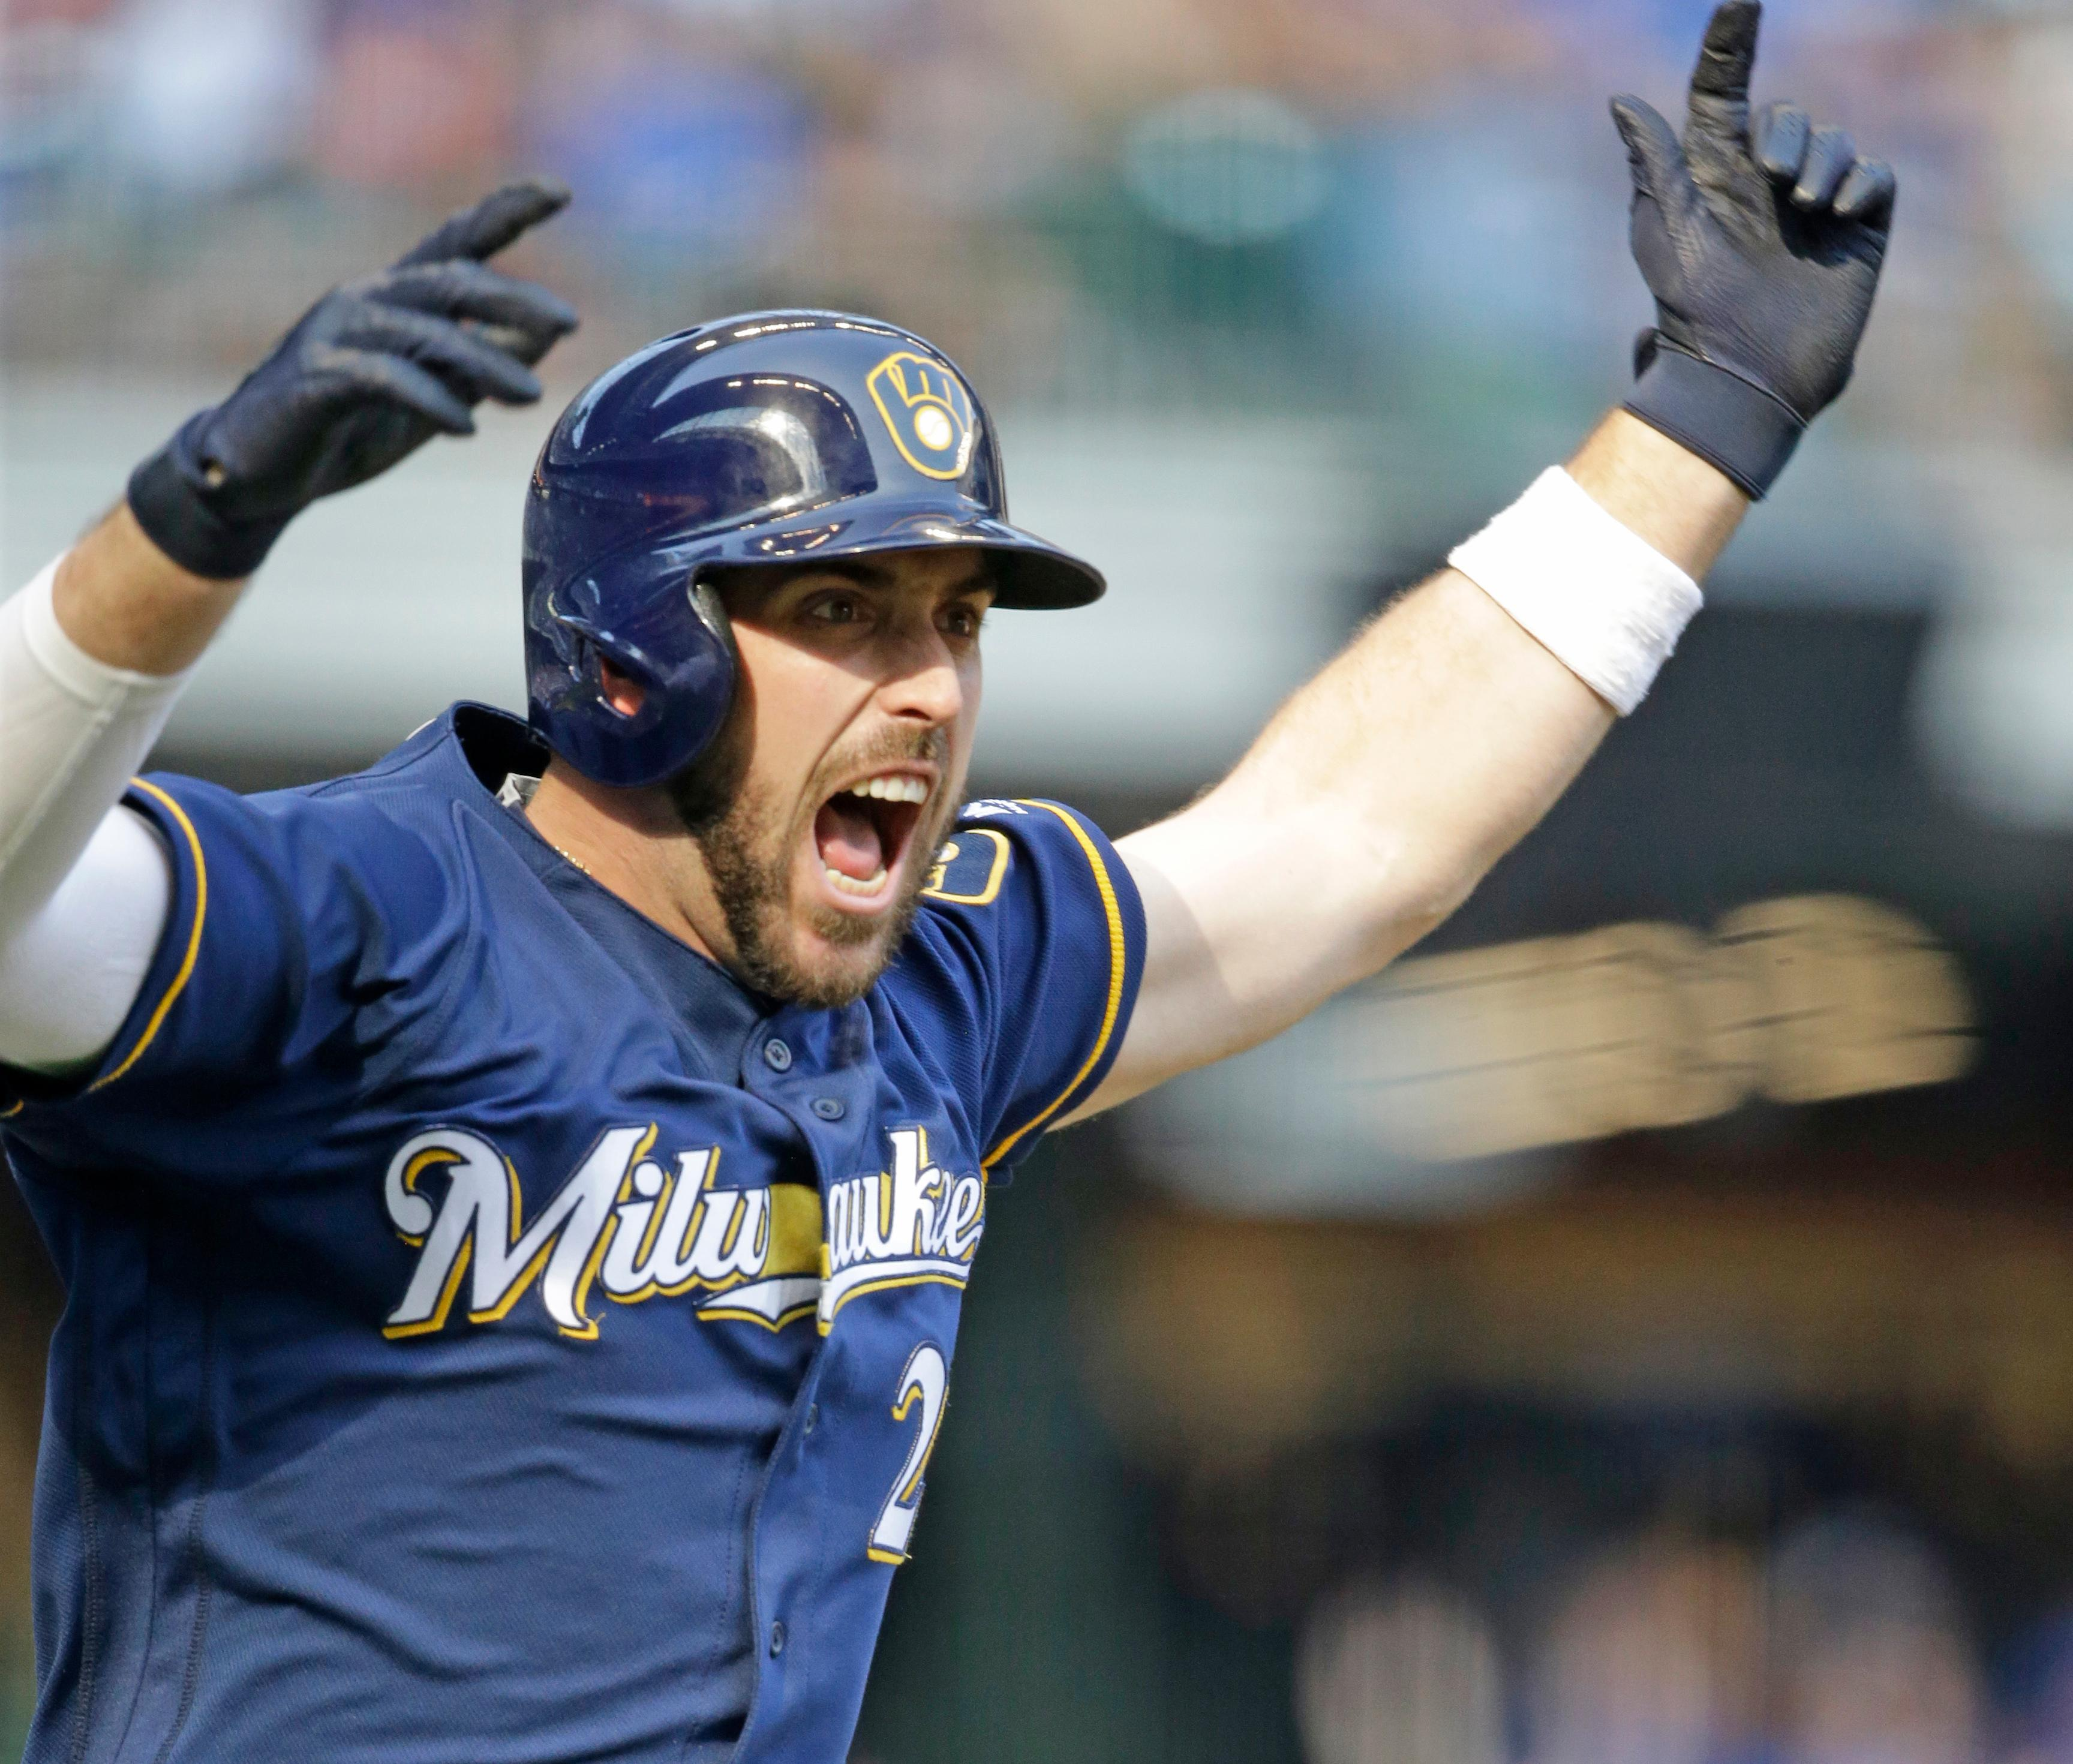 Milwaukee Brewers' Travis Shaw reacts after his two-run game winning home run against the Chicago Cubs during the 10th inning Saturday, Sept. 23, 2017, in Milwaukee. The Brewers won 4-3 in 10 innings. (AP Photo/Jeffrey Phelps)